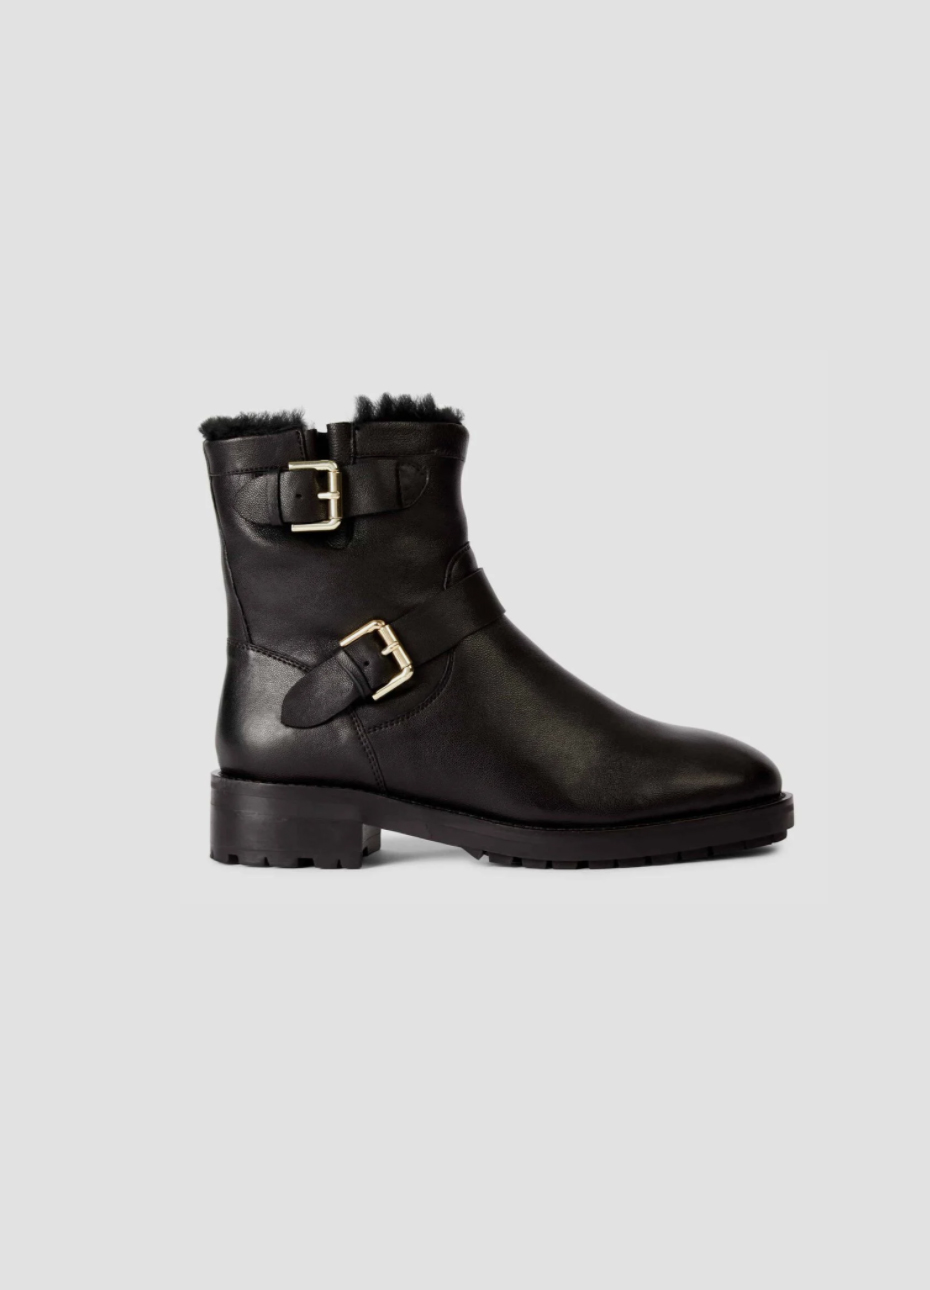 Women's flat leather boot with a buckle design from Hobbs.